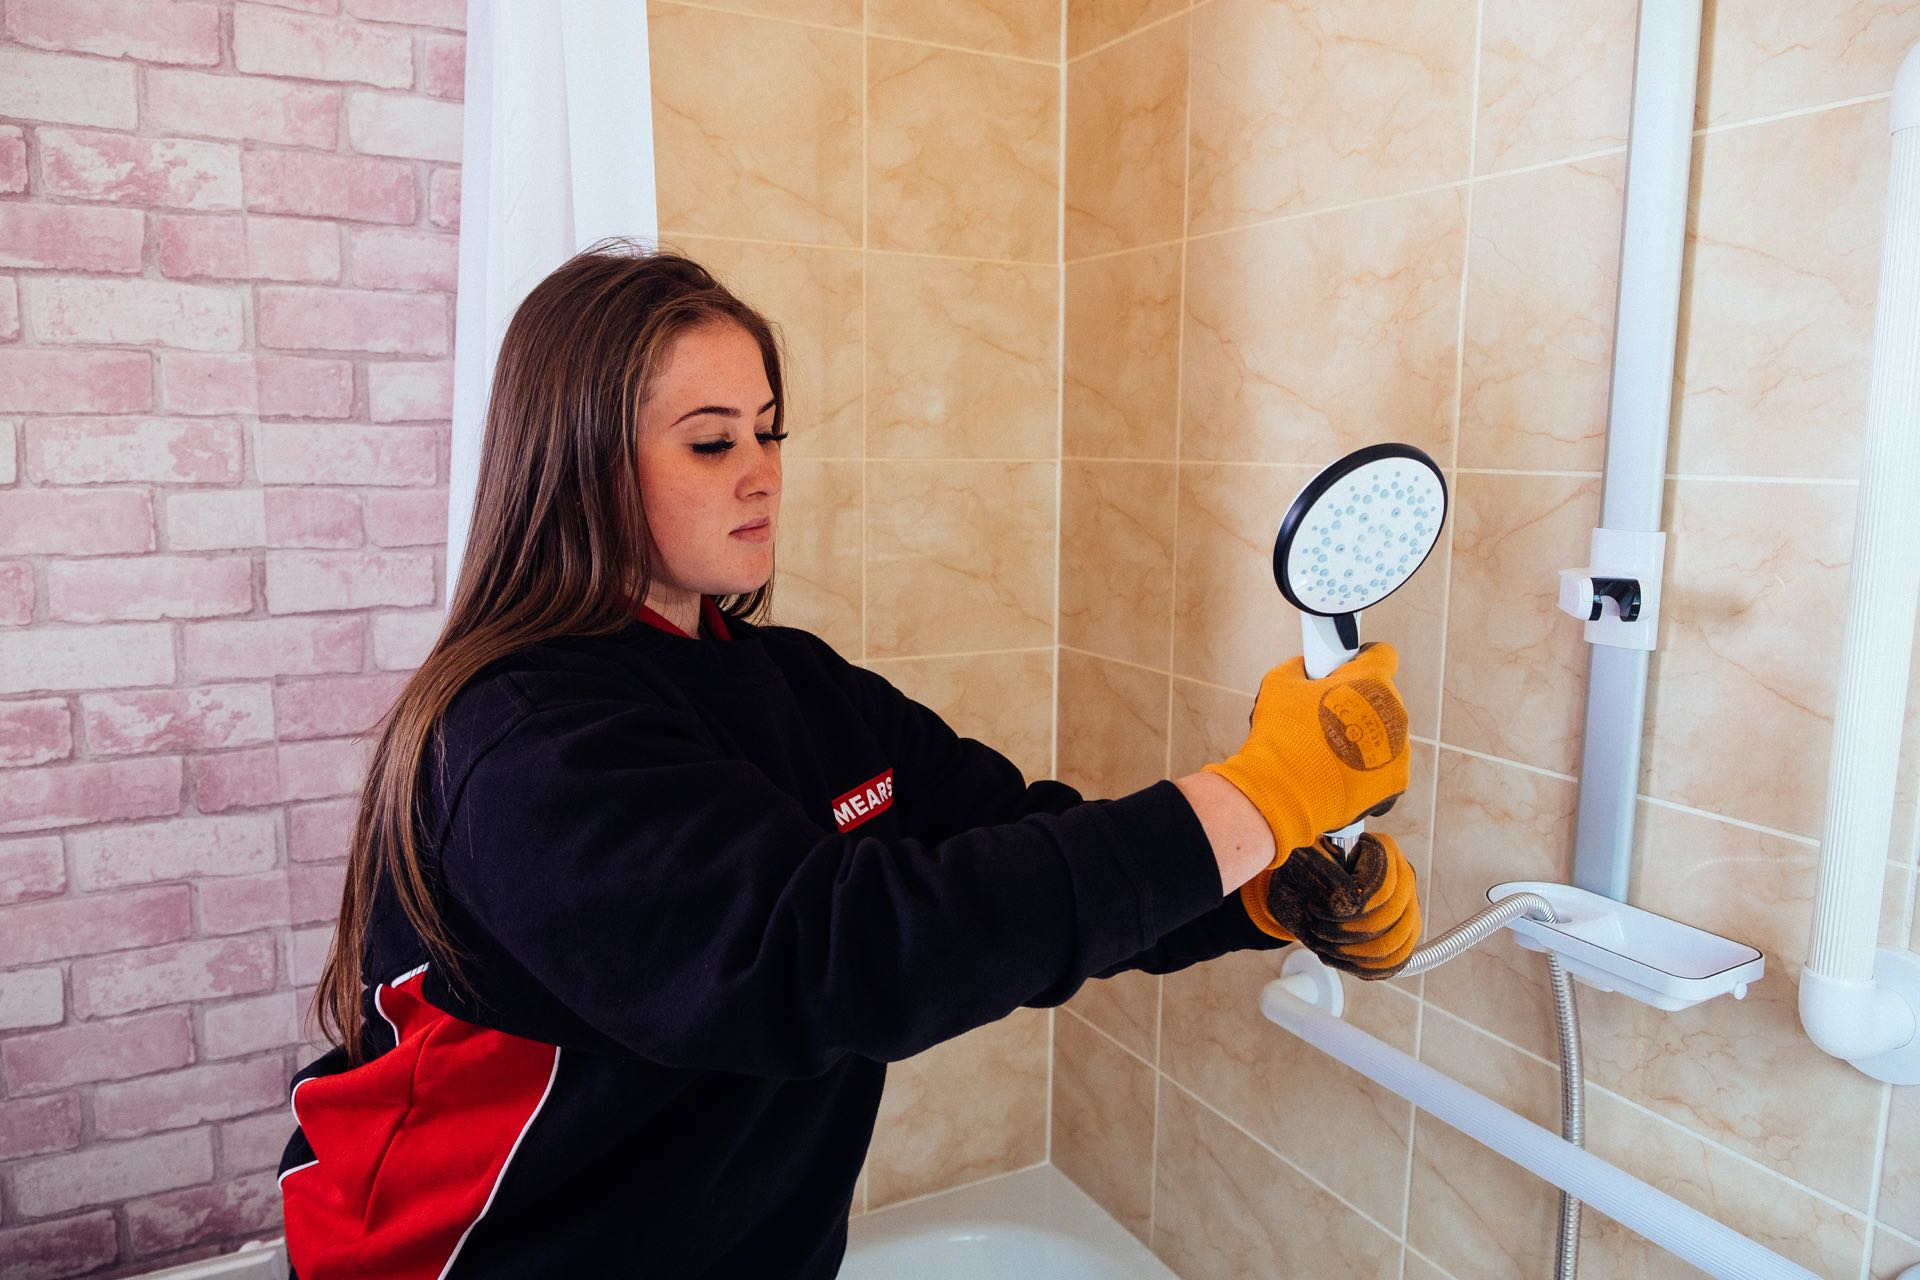 Mears colleague fixes shower fitting in bathroom